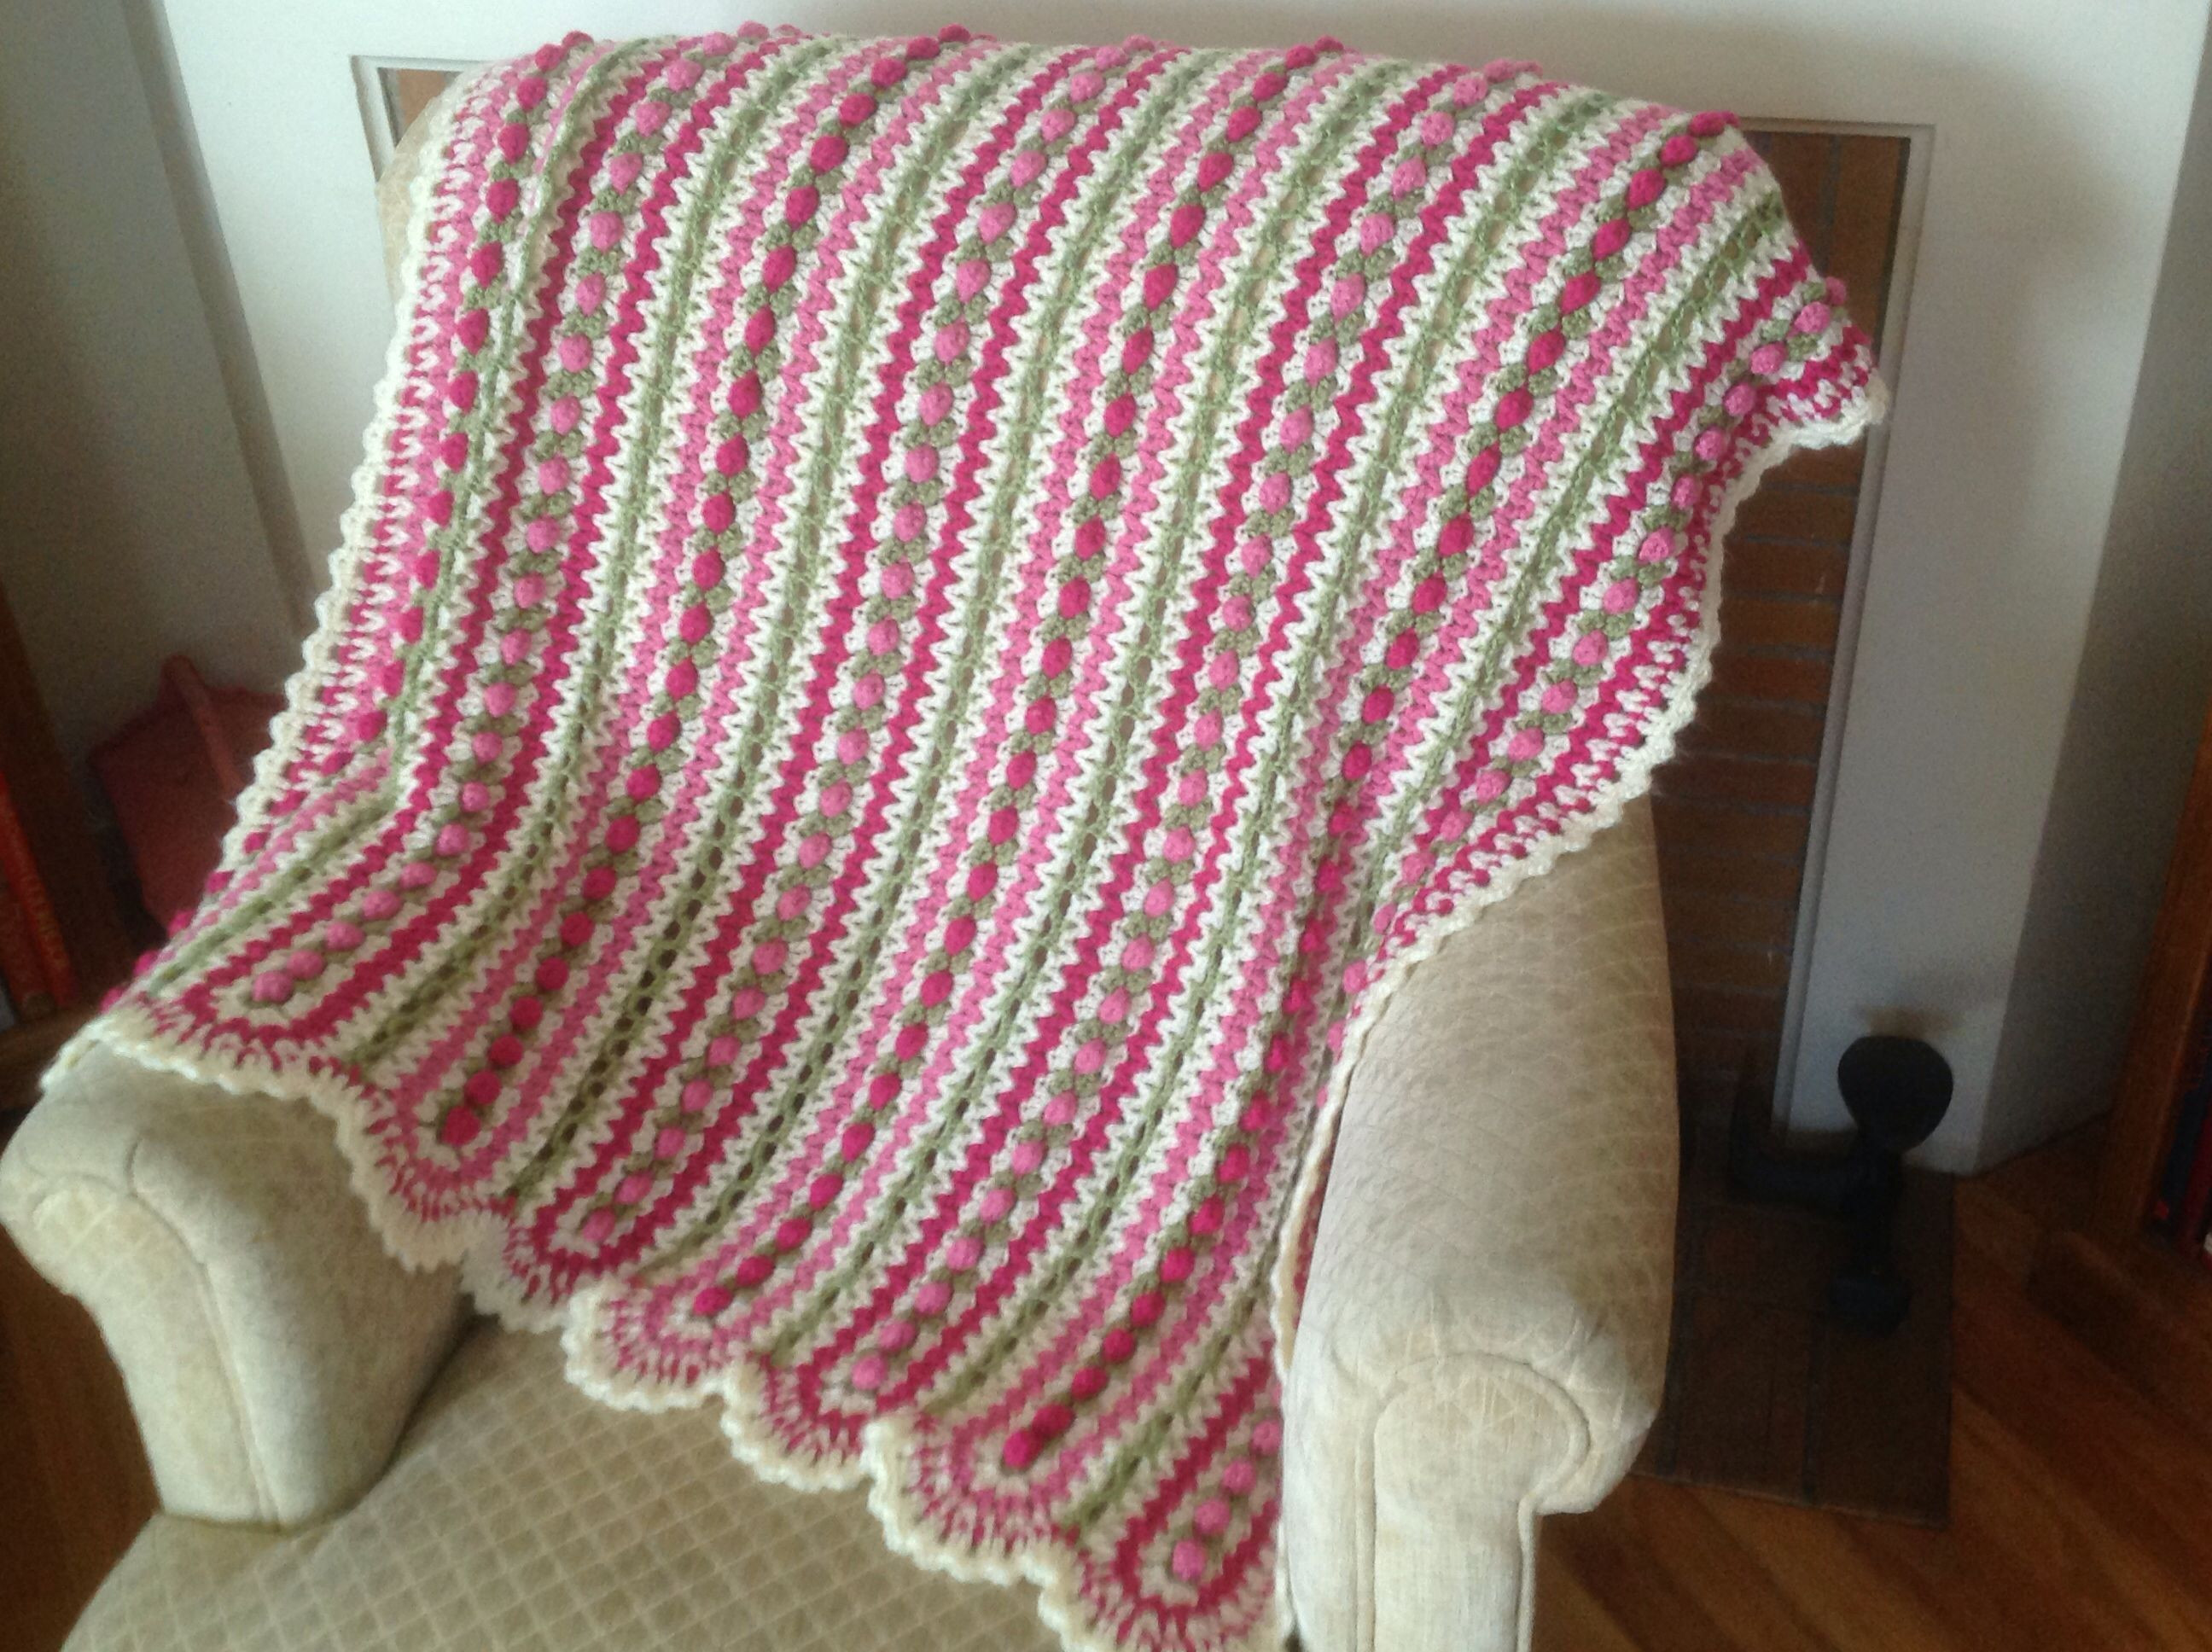 Inspirational Crochet Afghan Patterns Mile A Minute Dancox for Free Mile A Minute Crochet Patterns Of Marvelous 50 Pics Free Mile A Minute Crochet Patterns